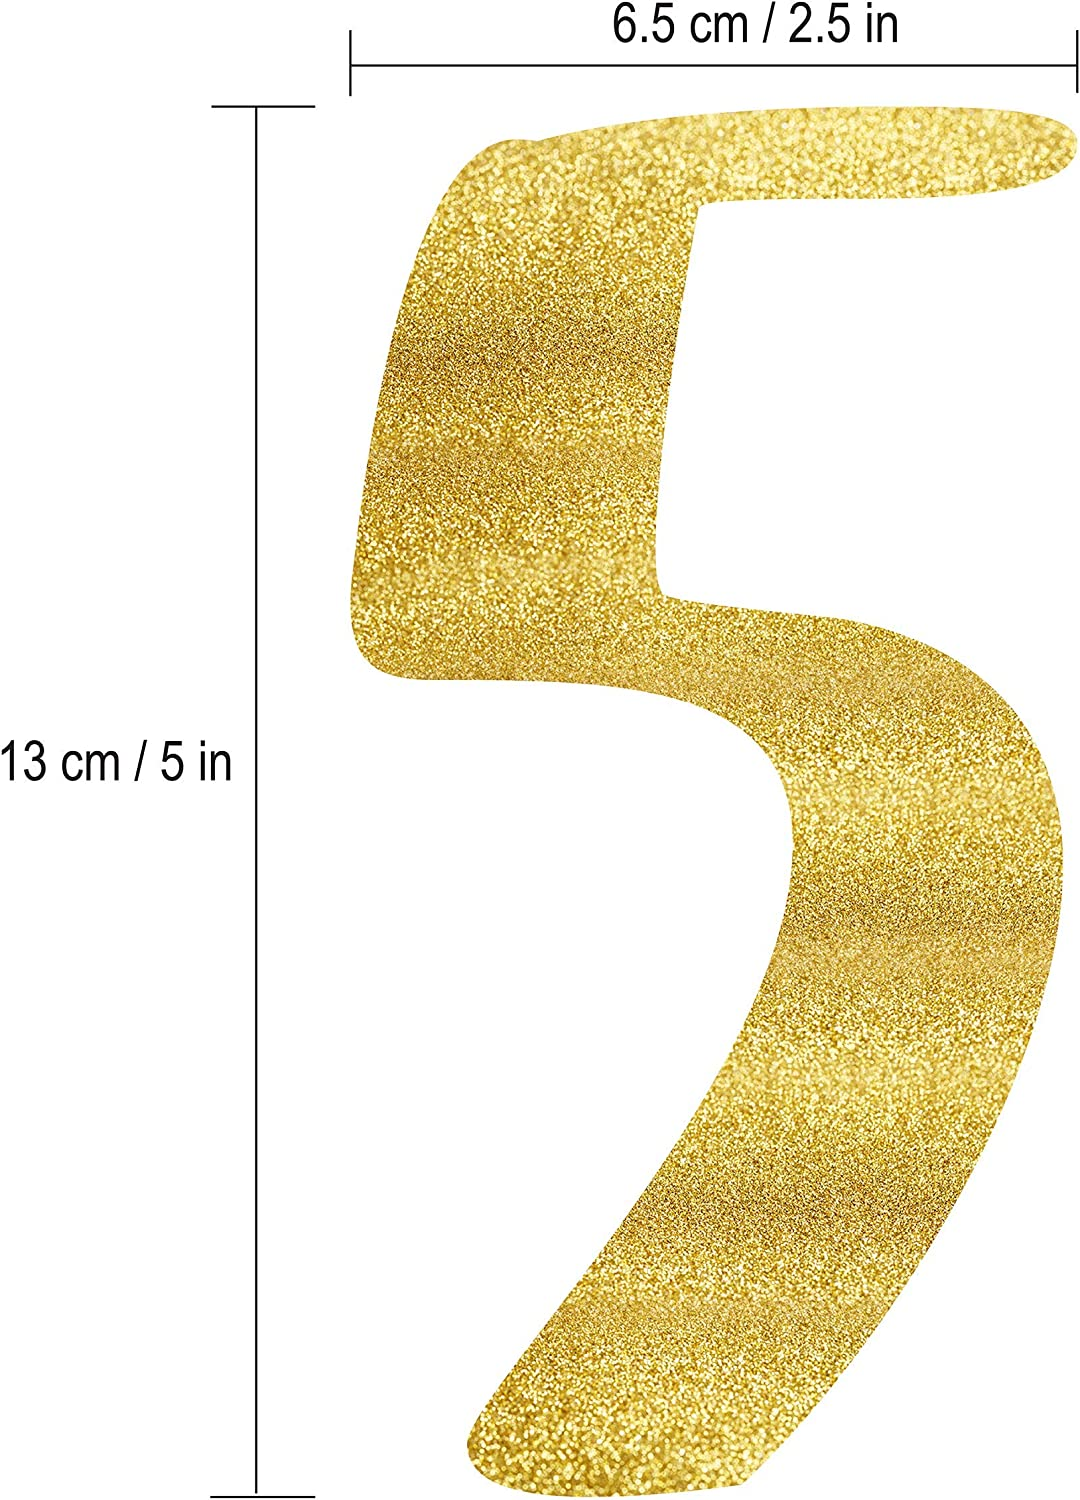 20 & Fabulous Gold Glitter Banner   Happy 20th Birthday Party Banner   20th  Wedding Anniversary Decorations   Milestone Birthday Party Decorations